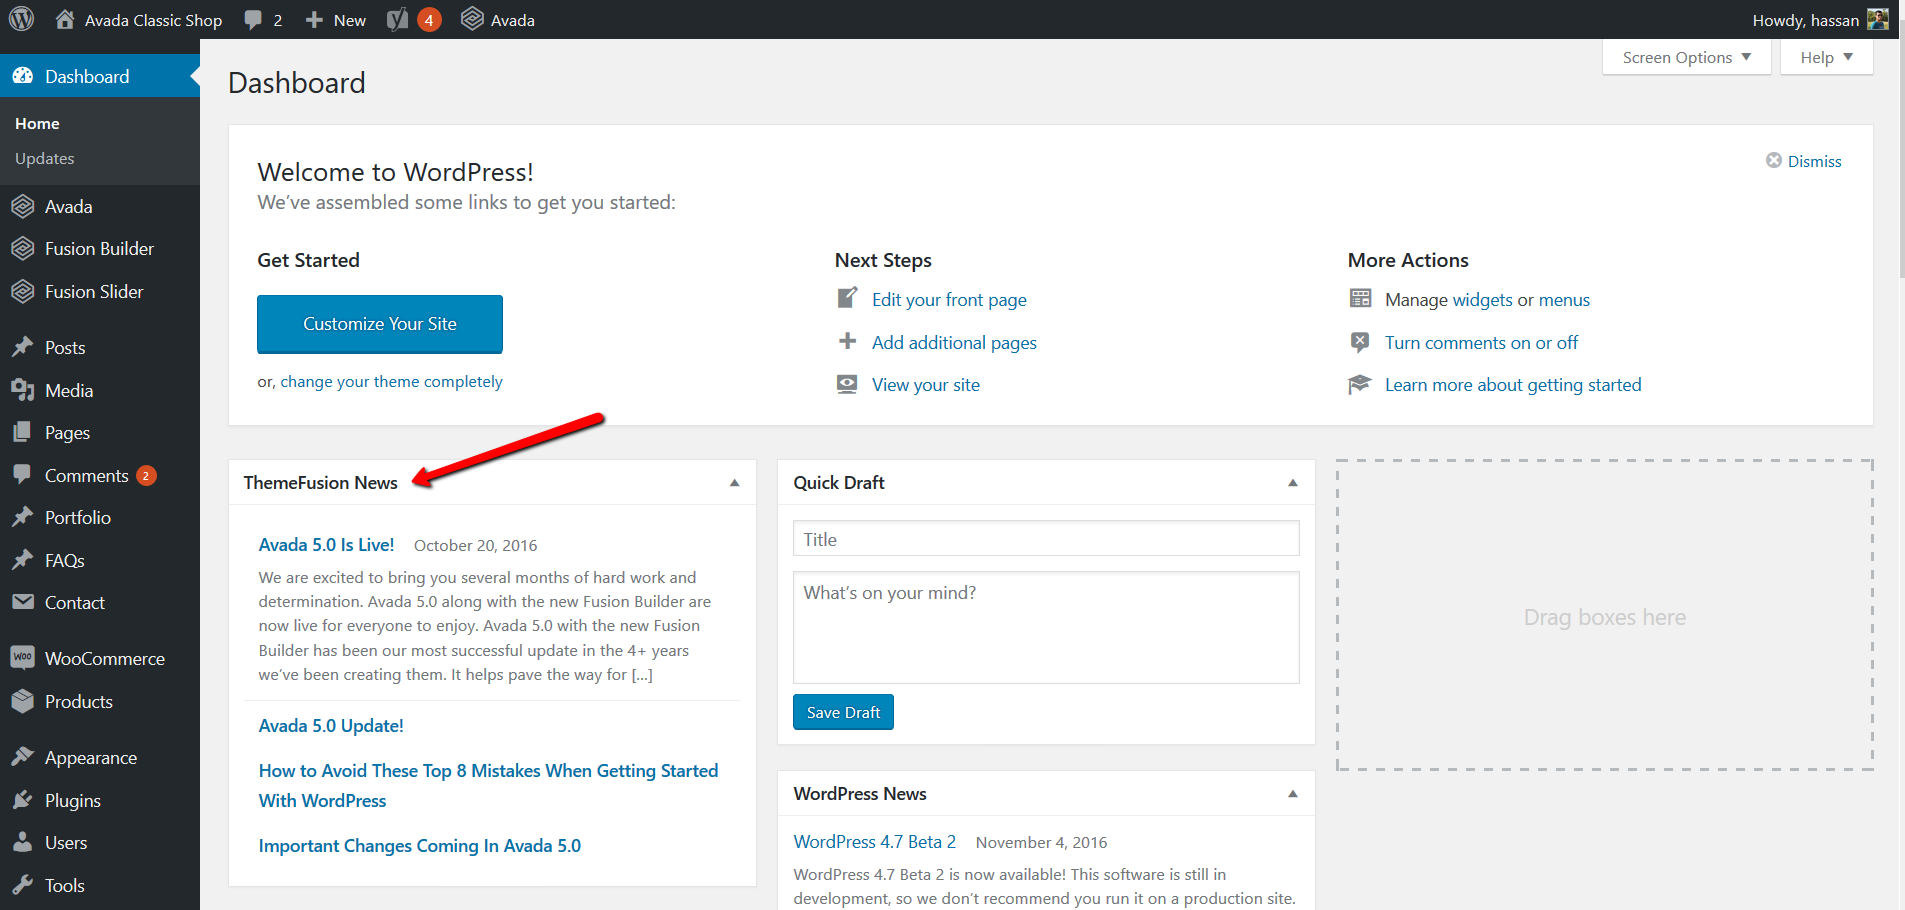 How to remove Theme Fusion News Widget from WordPress Dashboard ...